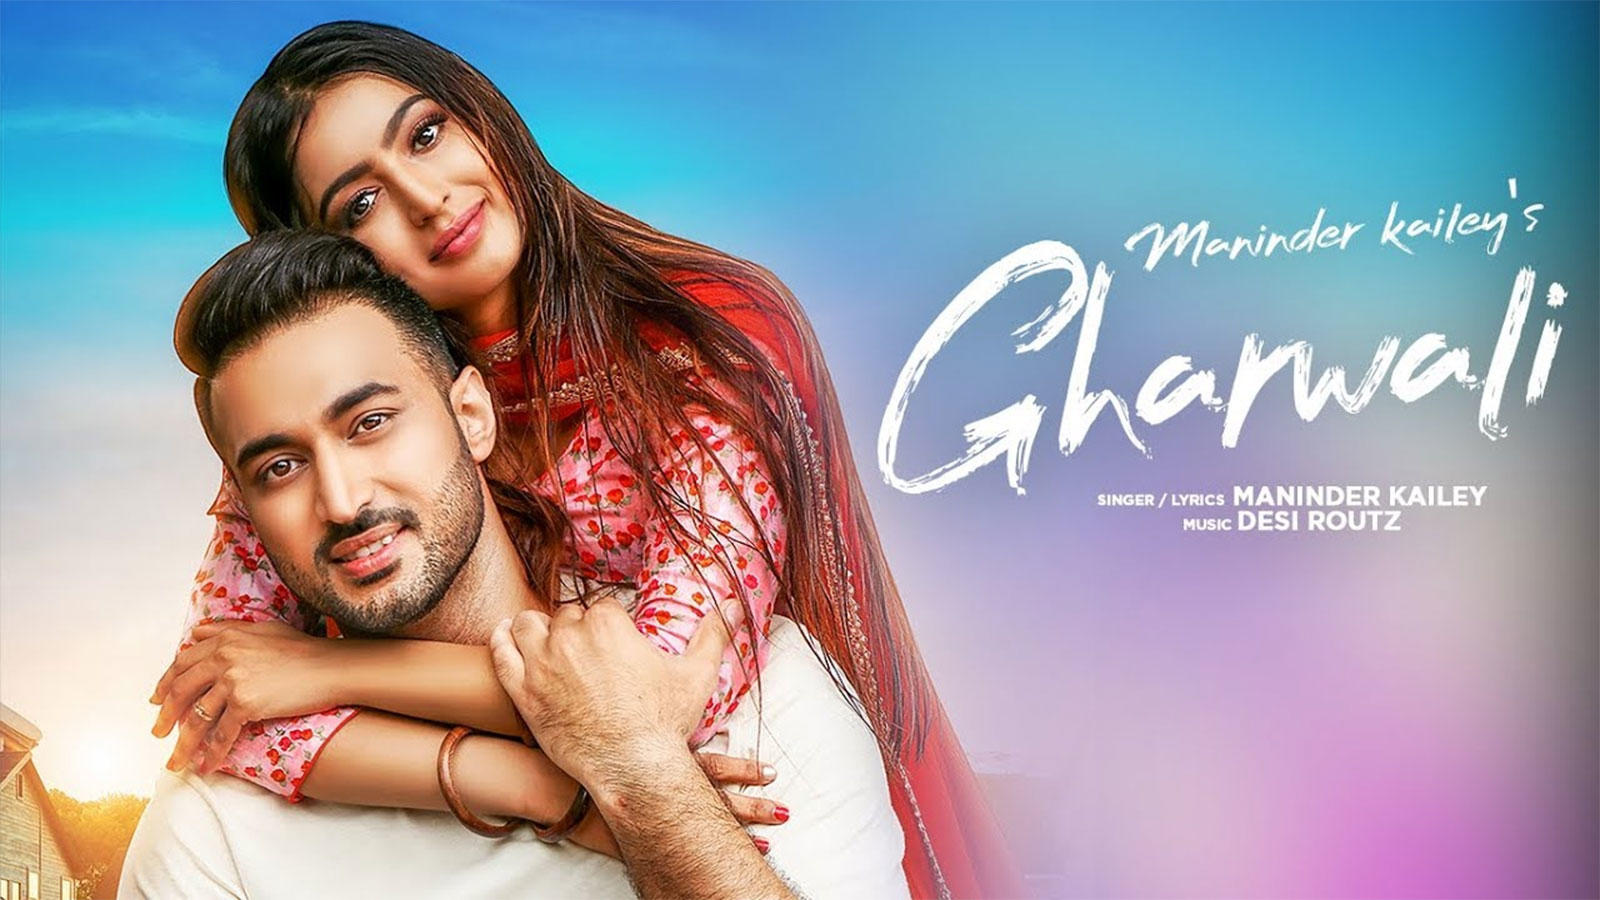 Latest Punjabi Song Gharwali Sung By Maninder Kailey | Punjabi Video Songs  - Times of India